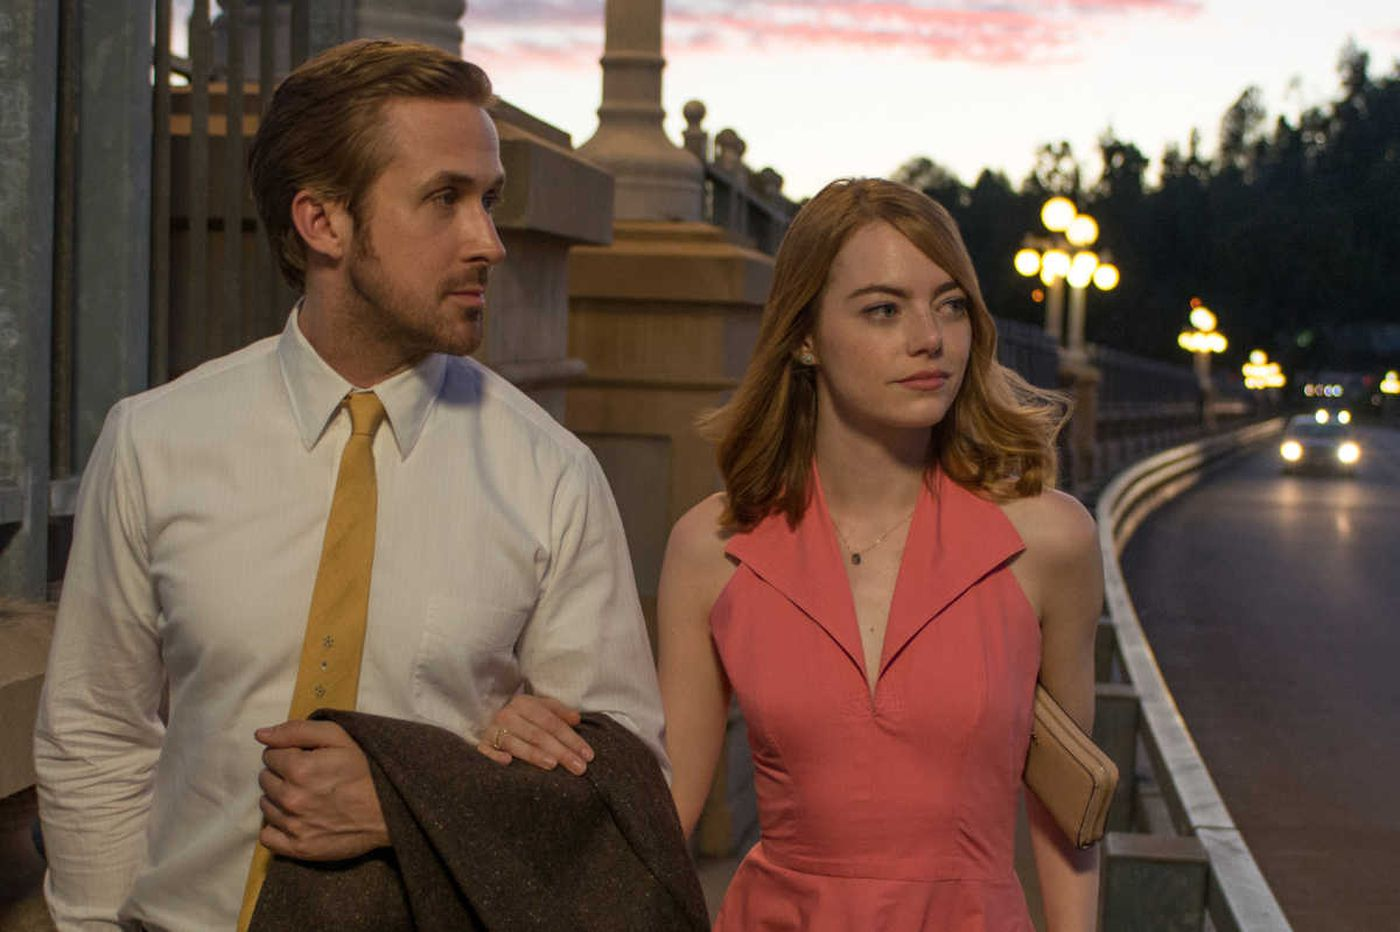 'La La Land' opens Philly film fest with joyous song-and-dance love story